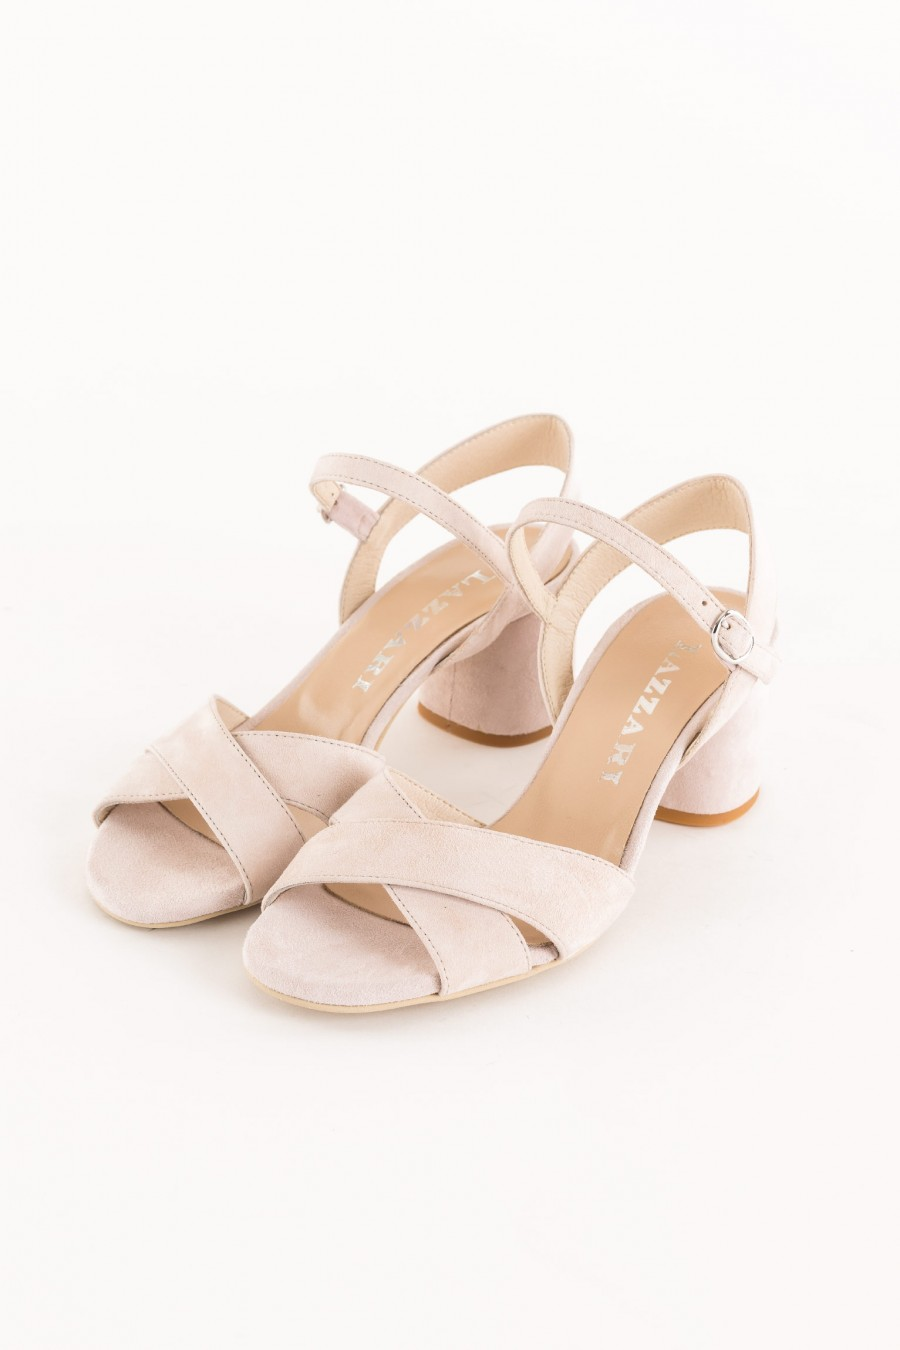 nude sandal with crossed band